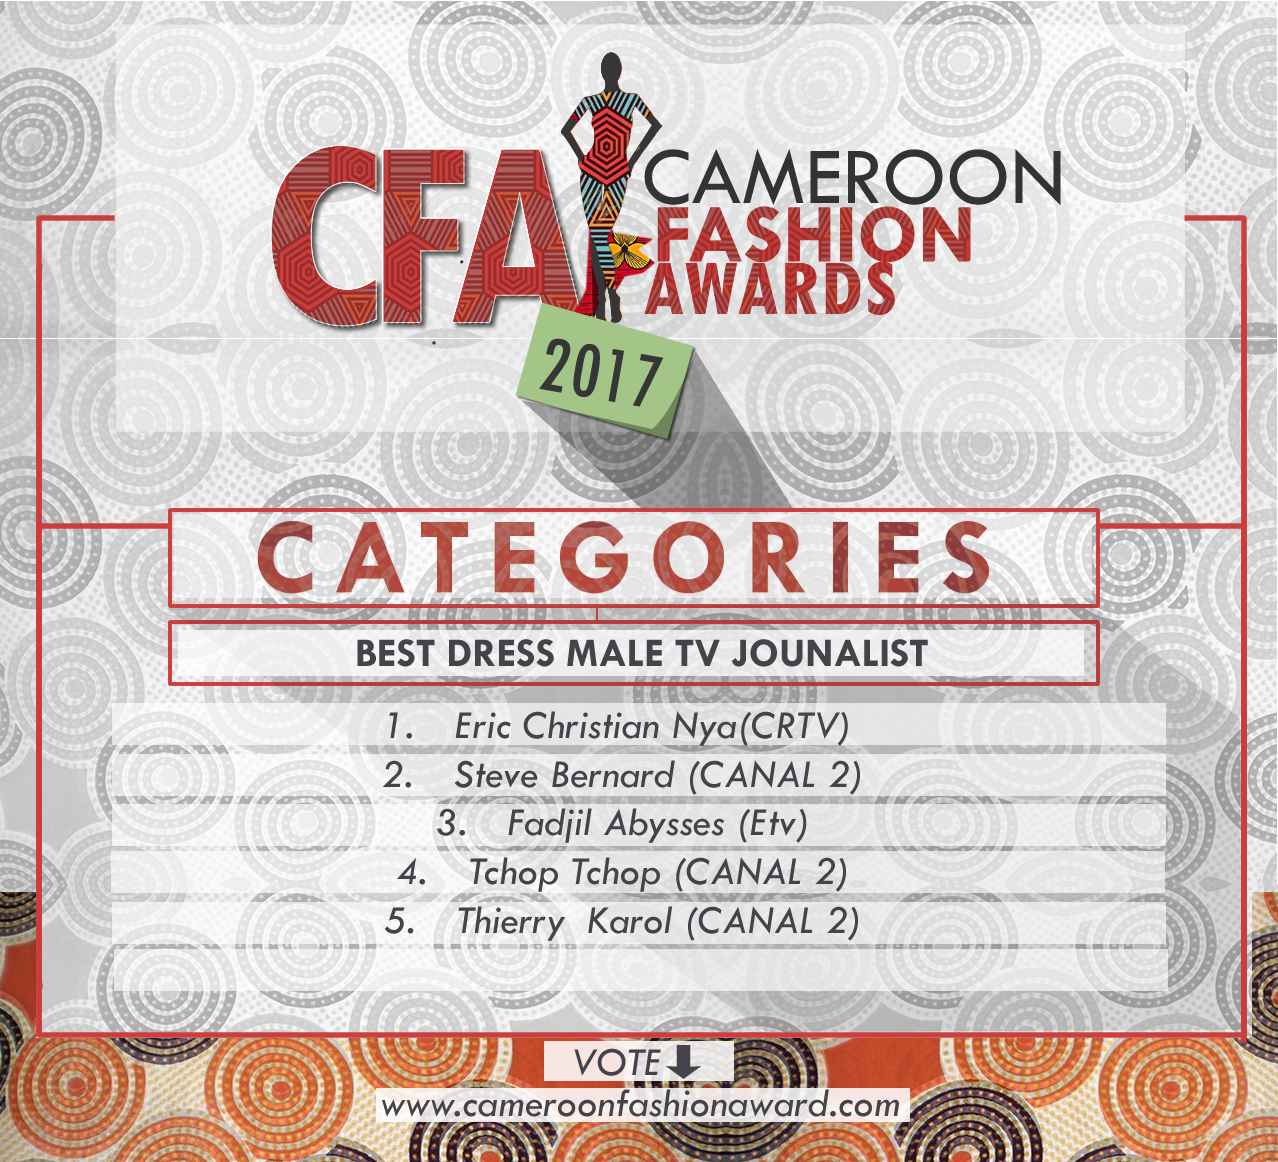 CFA best dress male tv journalist